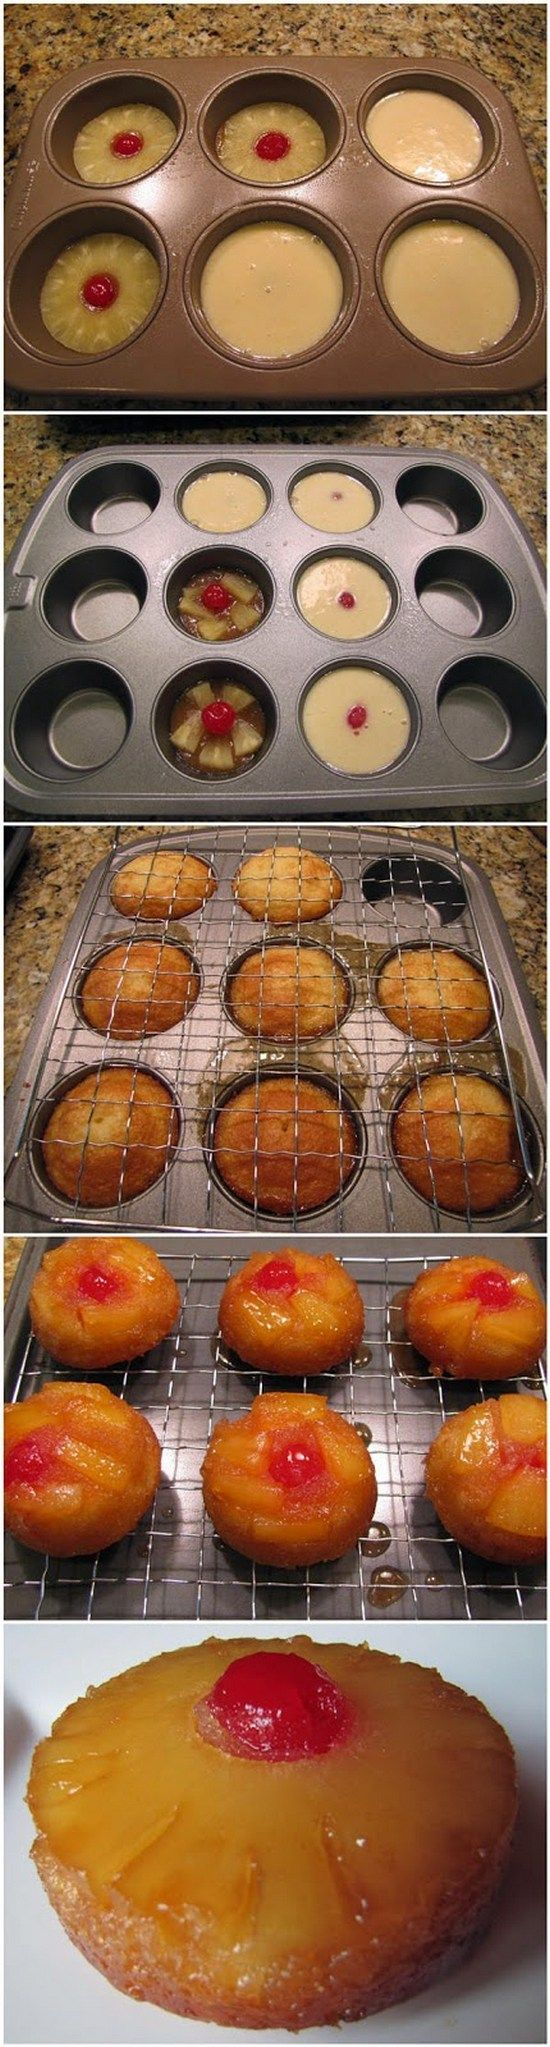 Mini Pineapple Upside Down Cakes. Brown sugar topping with pineapples and cake. They are delicious and quite easy to make.